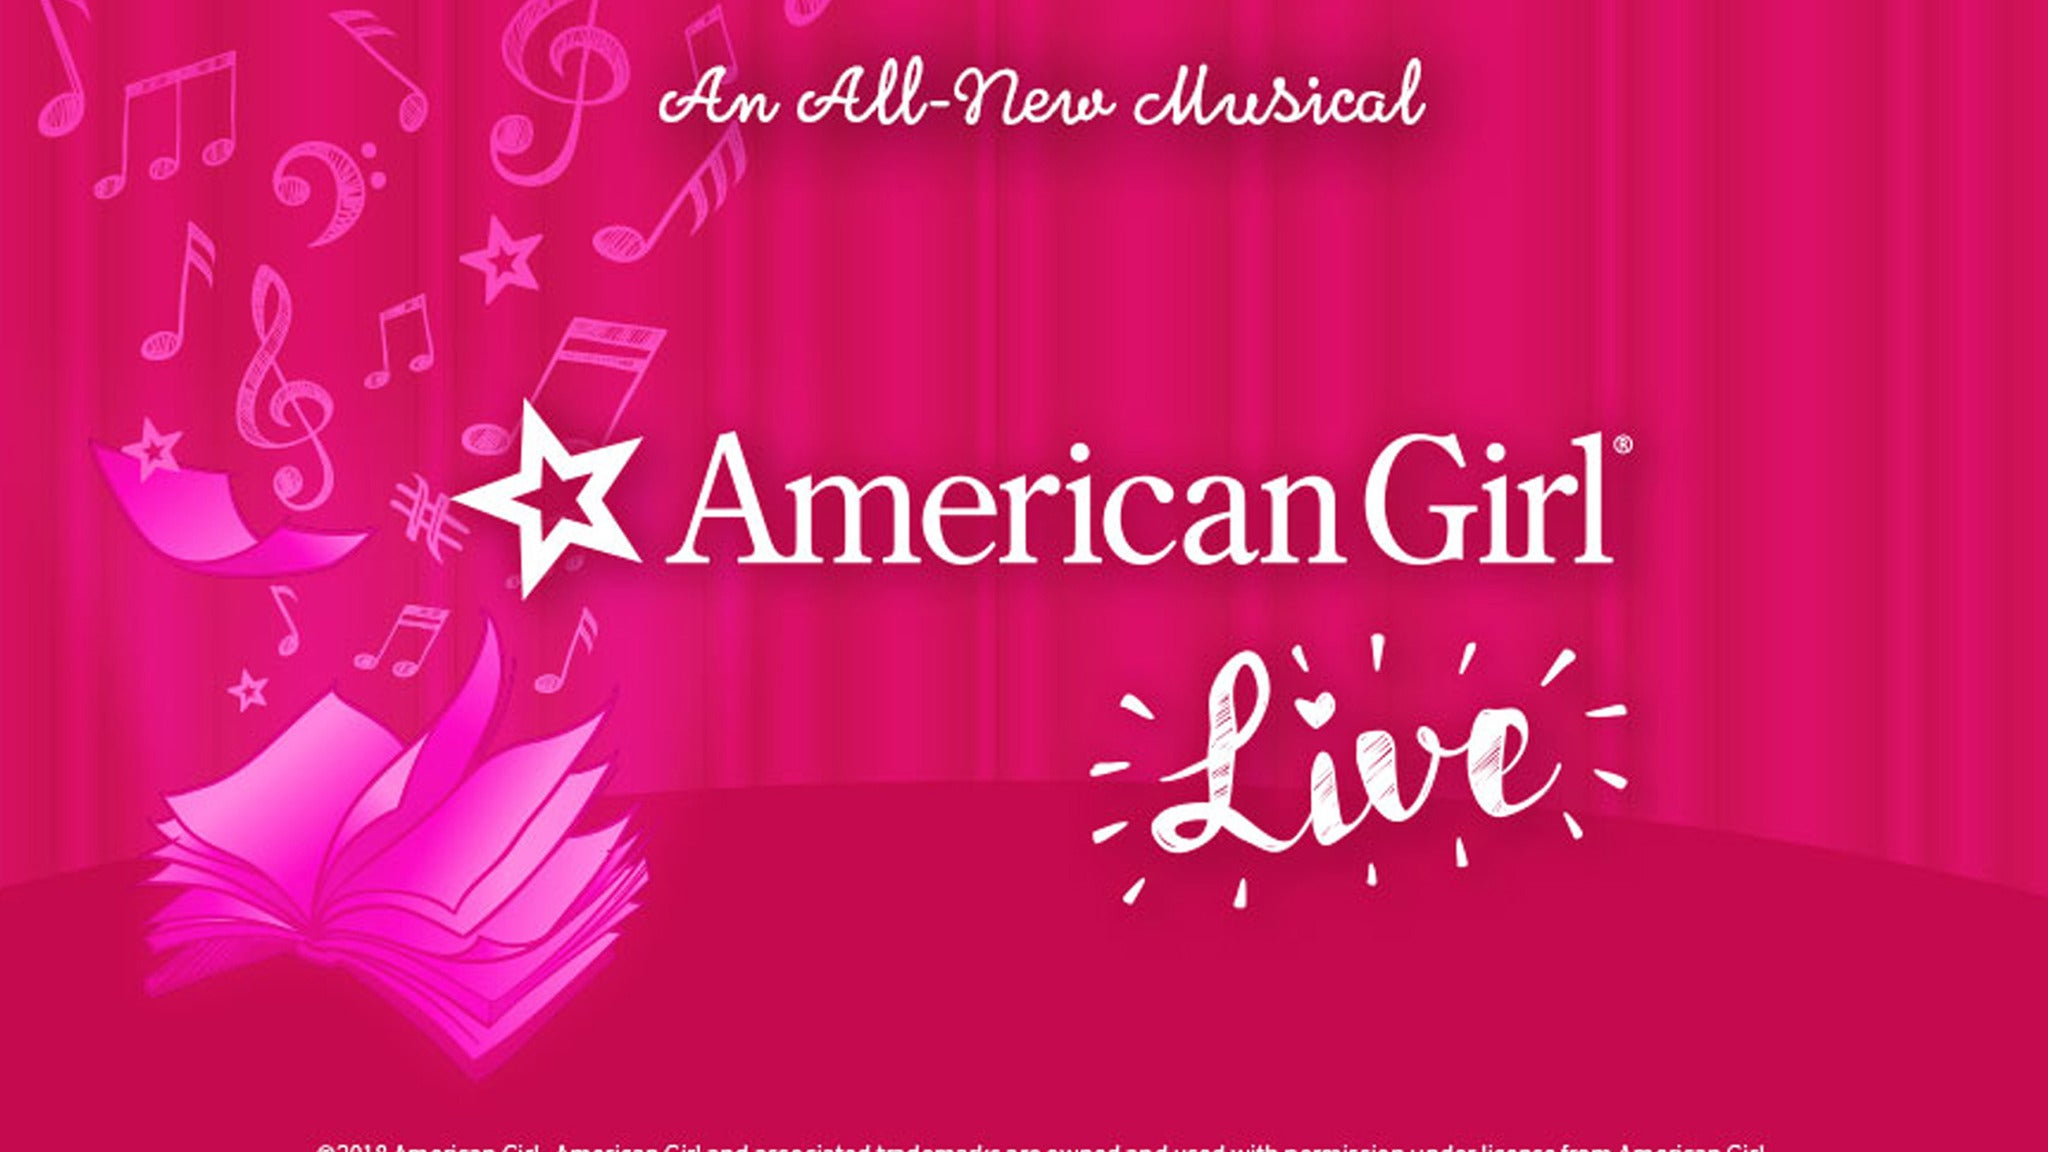 American Girl Doll Live at The Paramount